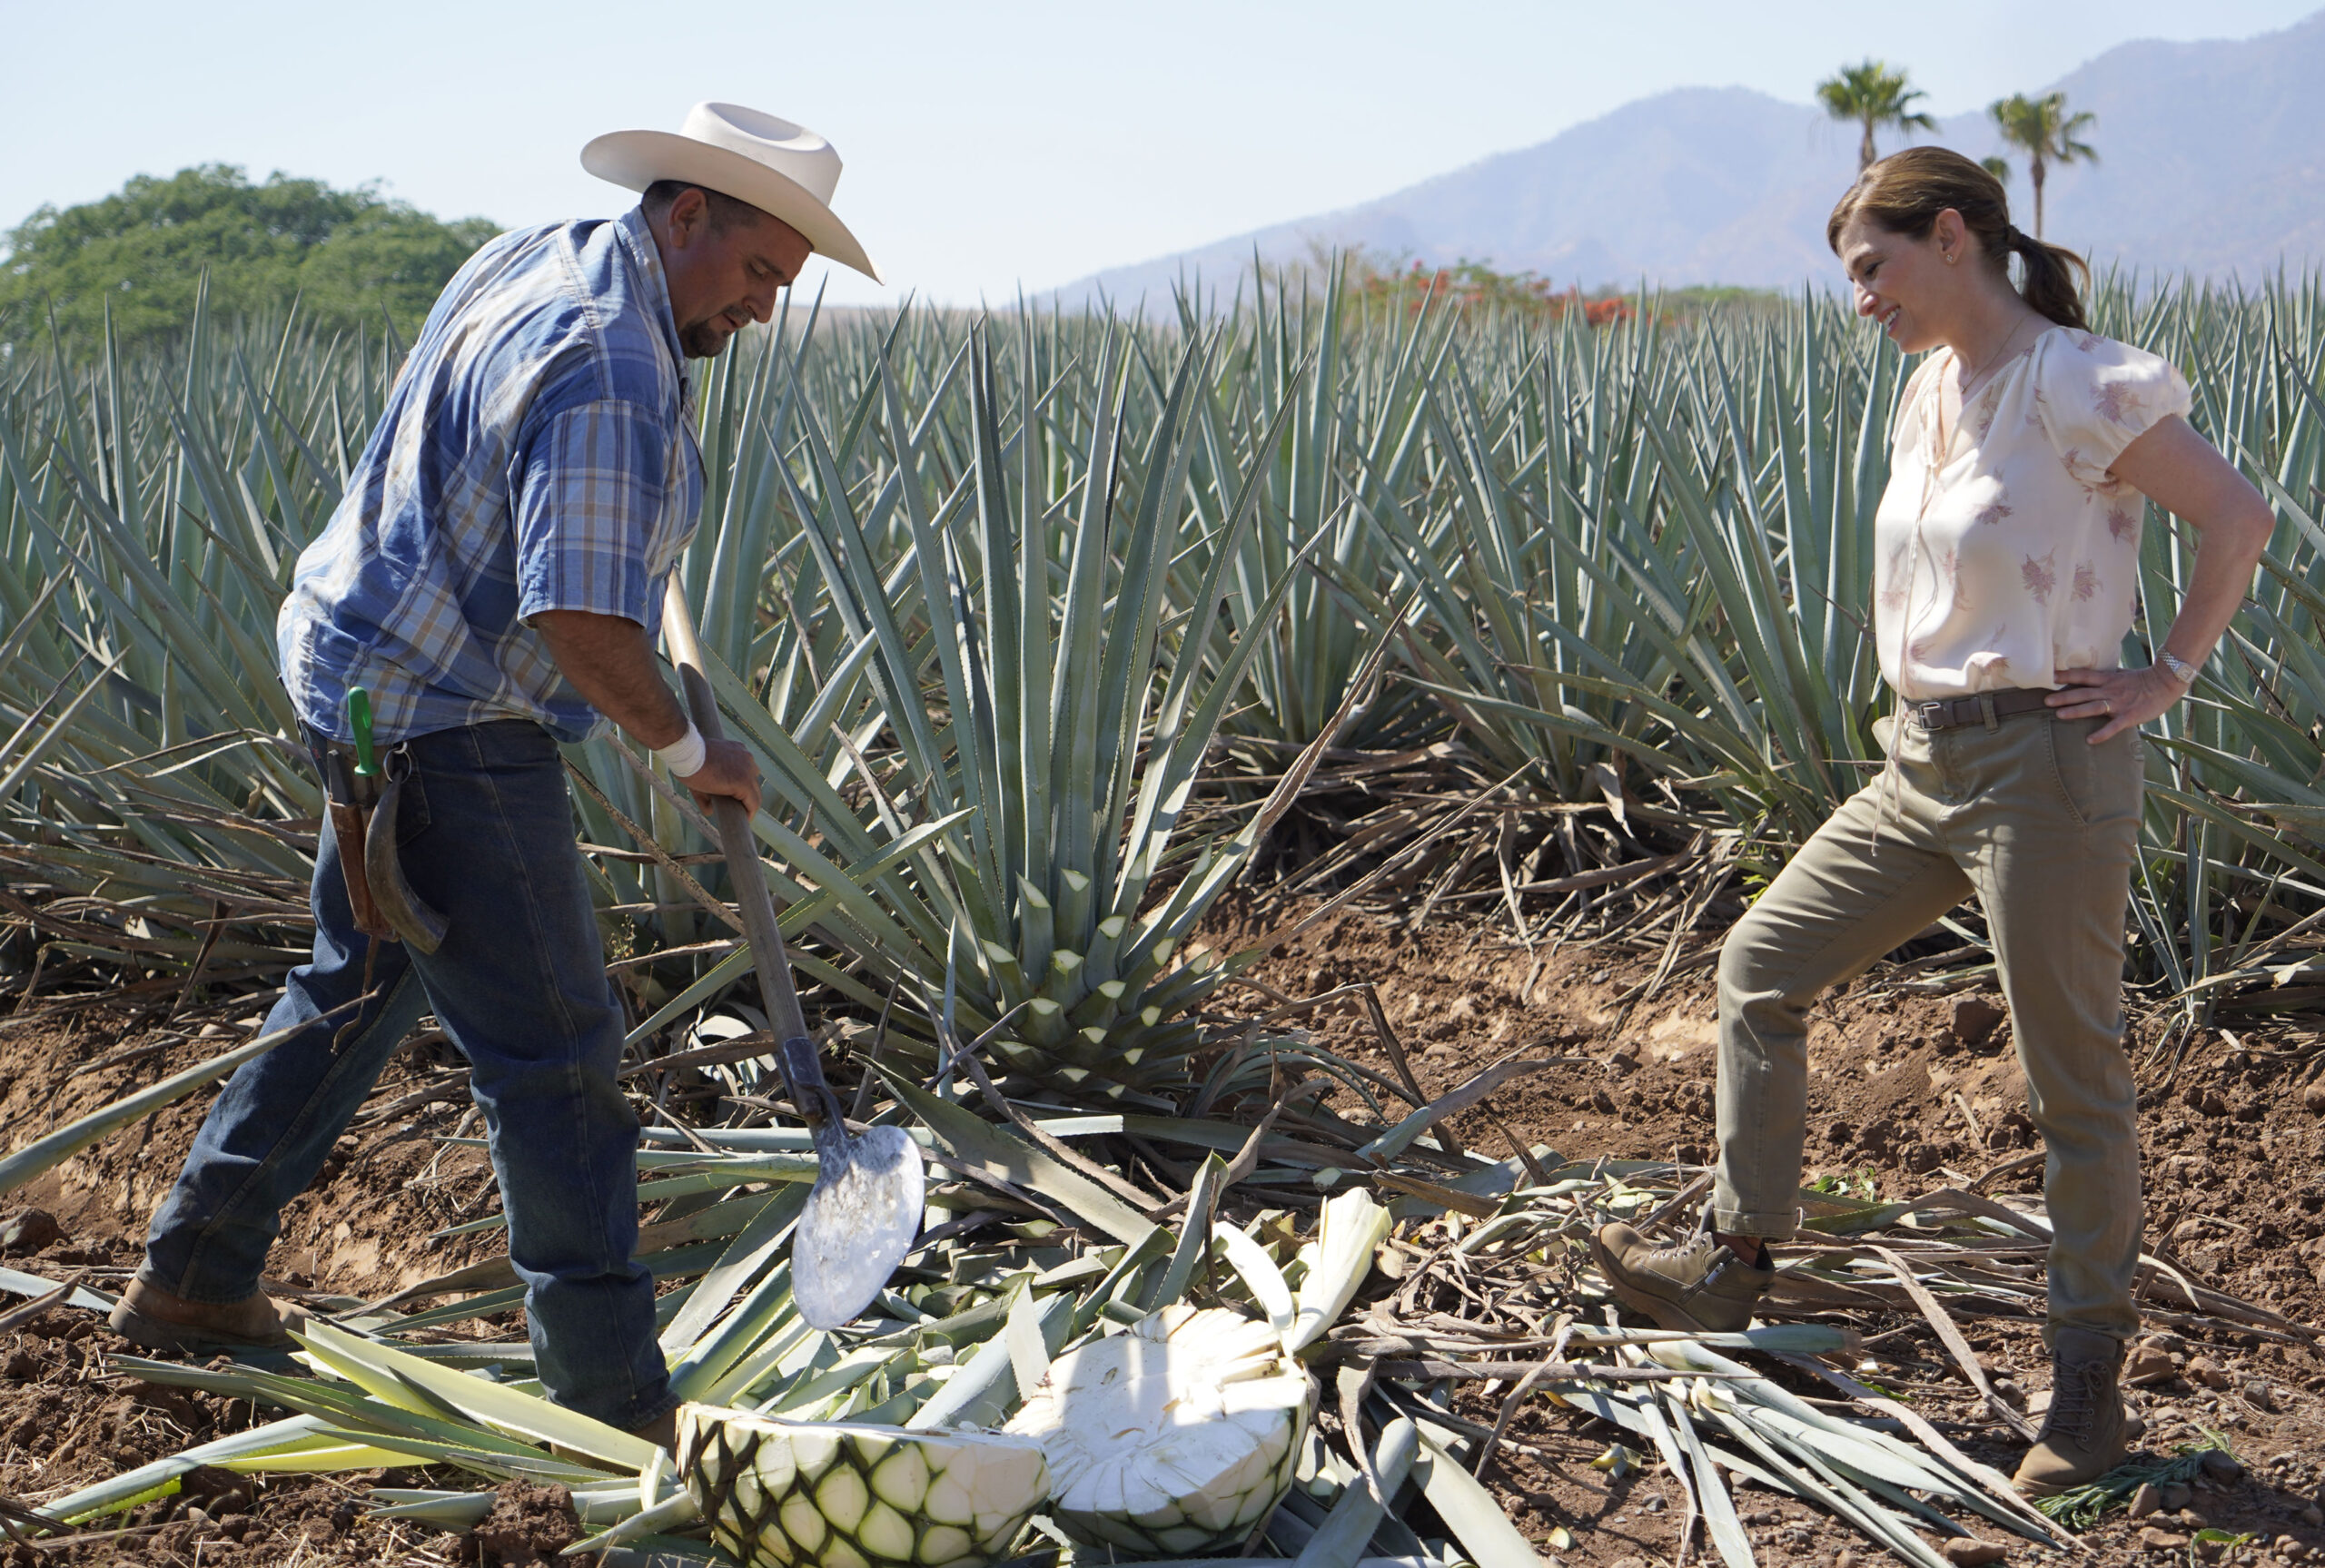 Pati's Mexican Table Episode 1008: The heart of Tequila